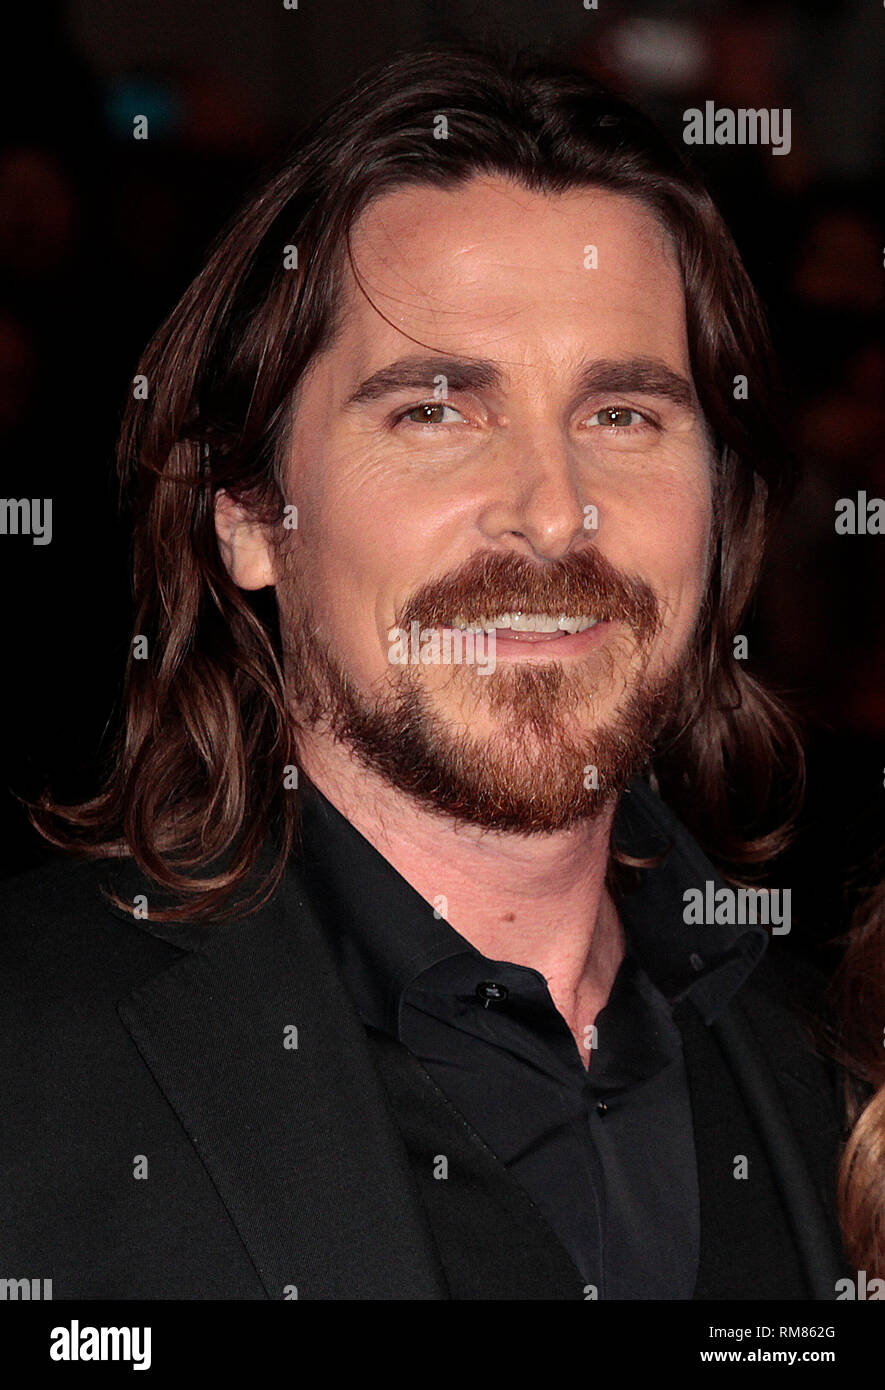 Dec 3, 2014 - Exodus: Gods And Kings World Premiere - VIP Red Carpet Arrivals at Odeon,  Leicester Square, London Pictured: Christian Bale - Stock Image